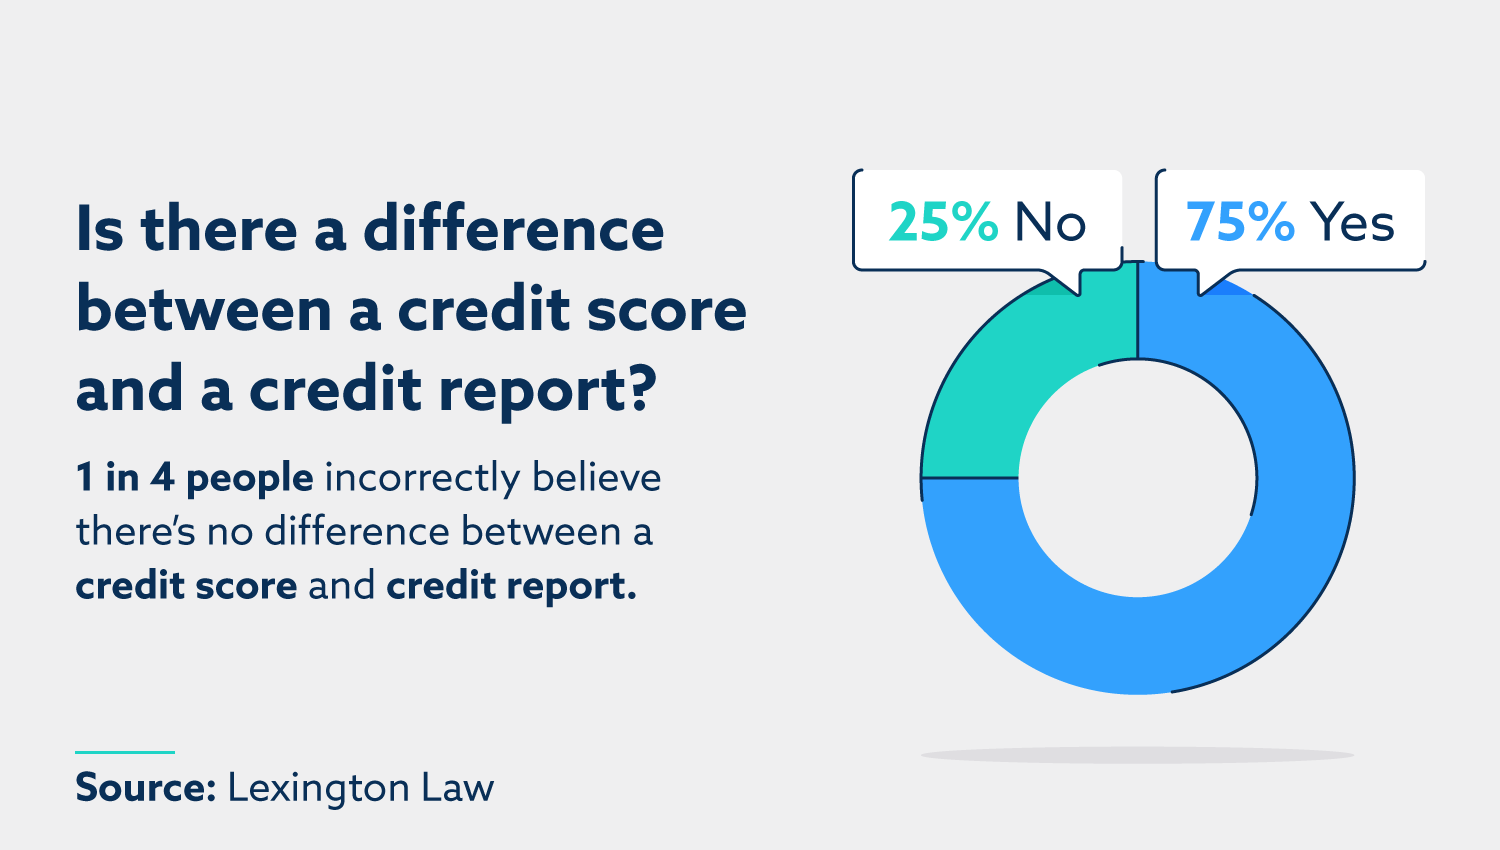 Is there a difference between a credit score and a credit report? 1 in 4 people incorrectly believe there's no difference between a credit score and credit report. 75% answered yes, there is a difference, while 25% answered no, there is no difference.